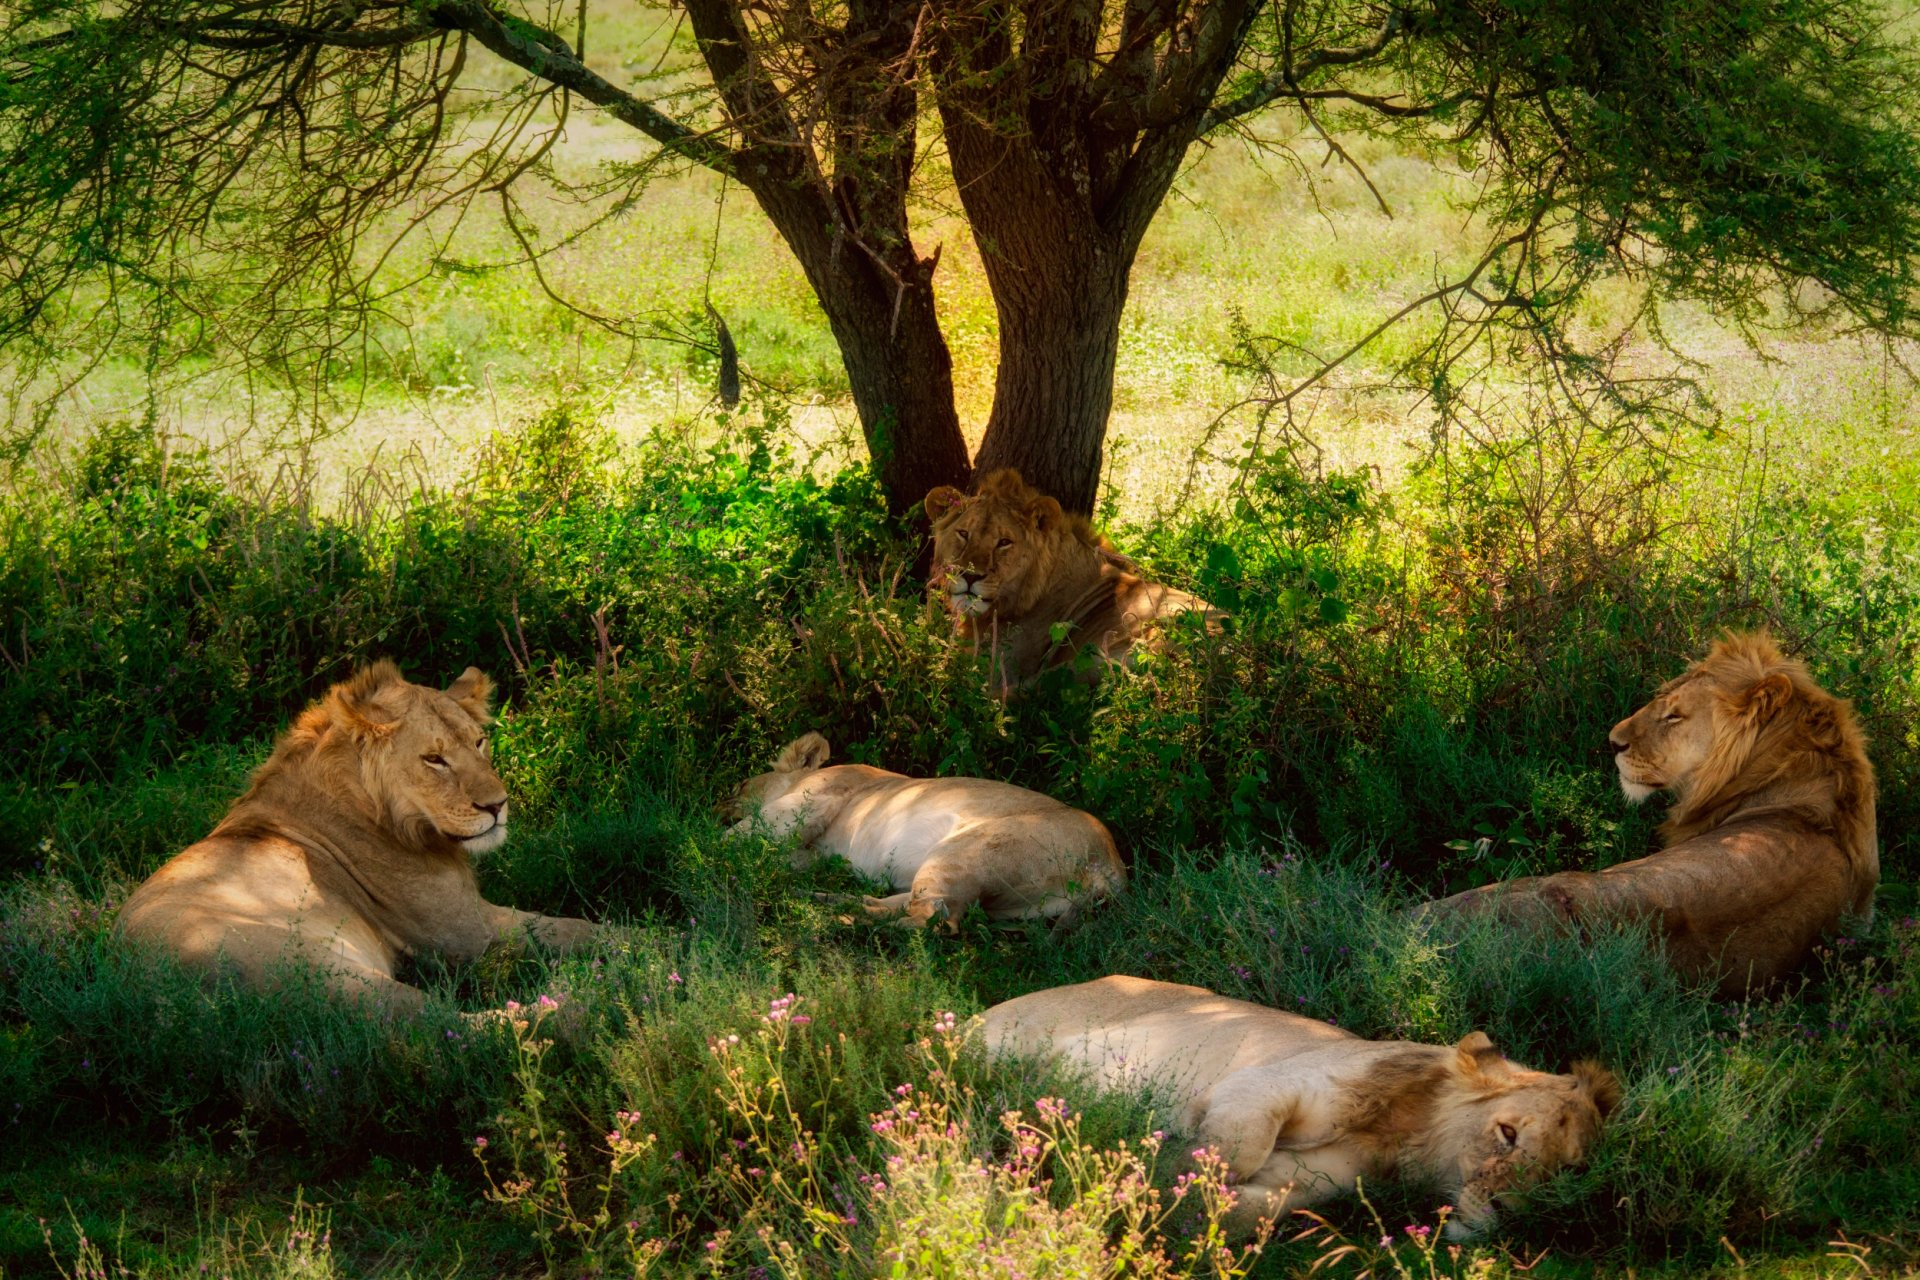 Download Wallpapers Download 2790x2547 Animals Grass: Lions Resting Under Shady Tree Full HD Wallpaper And